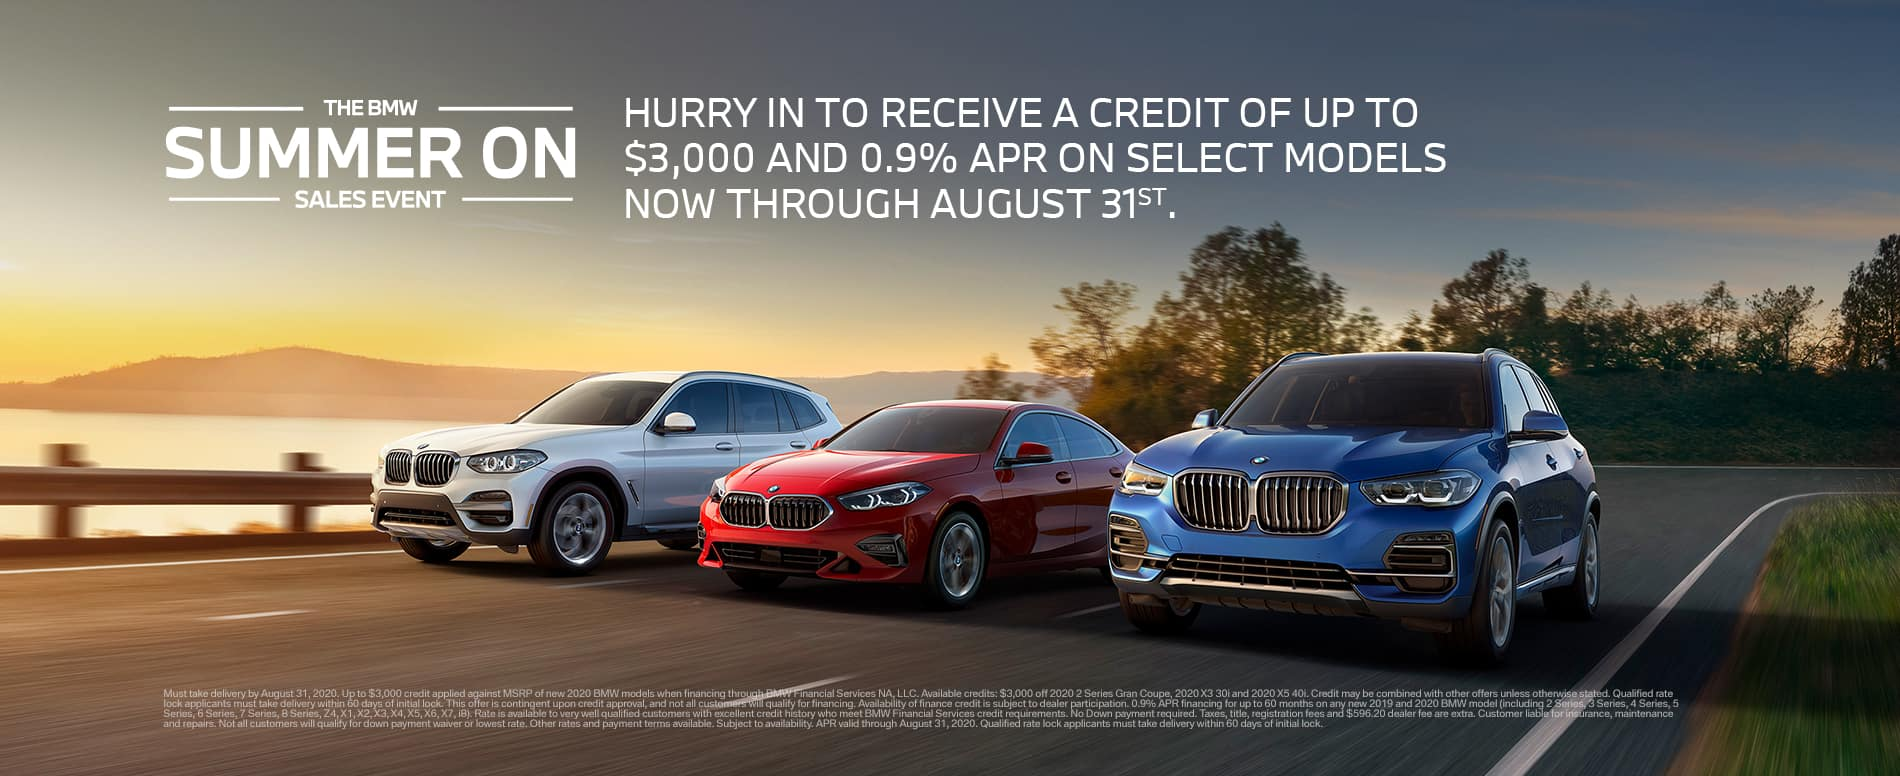 BMW Summer On Sales Event